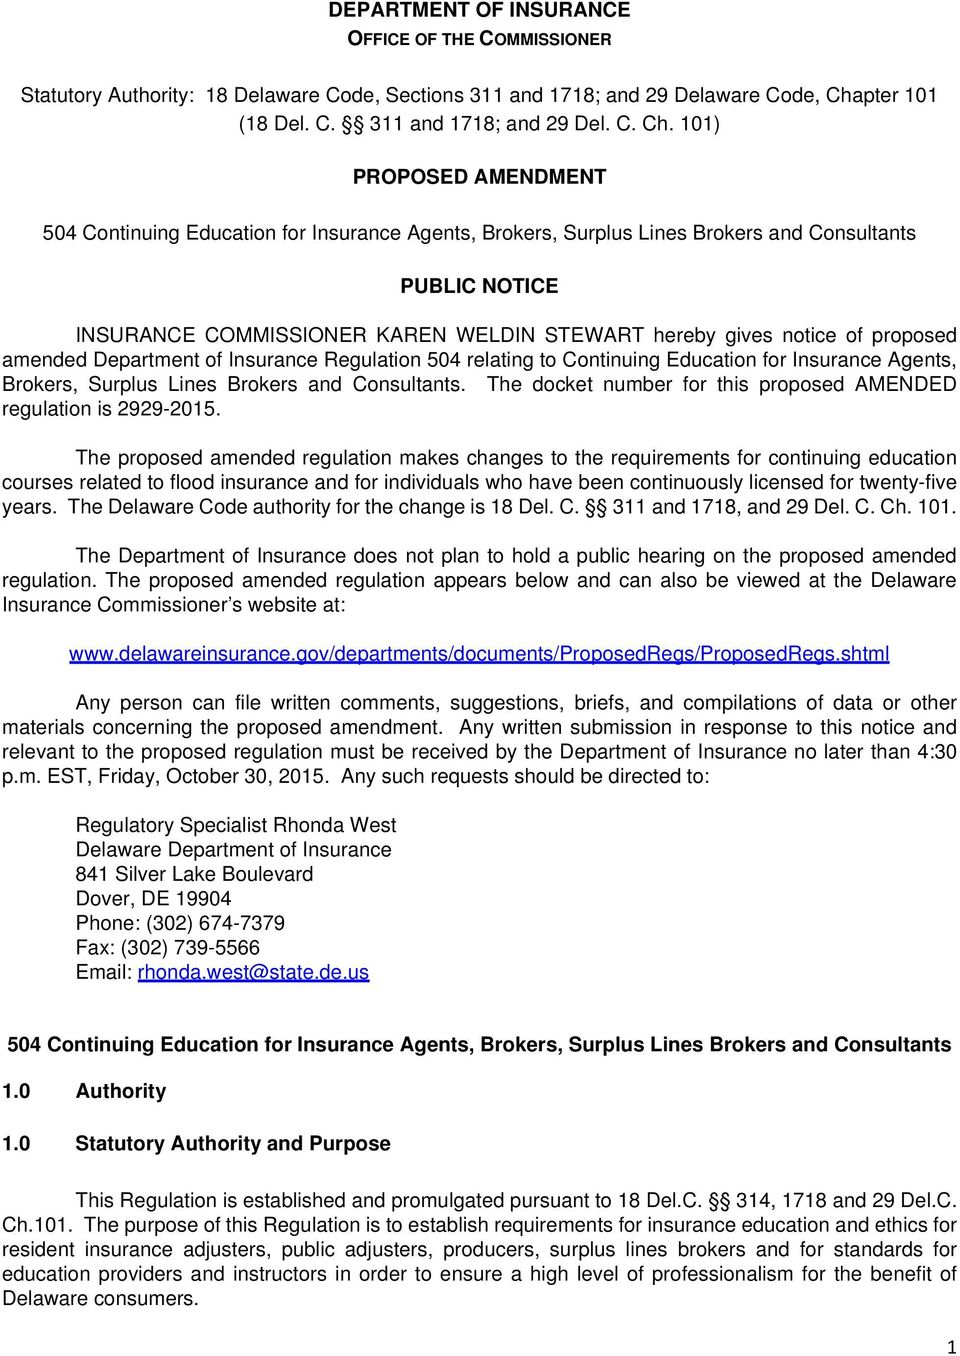 101) PROPOSED AMENDMENT 504 Continuing Education for Insurance Agents, Brokers, Surplus Lines Brokers and Consultants PUBLIC NOTICE INSURANCE COMMISSIONER KAREN WELDIN STEWART hereby gives notice of